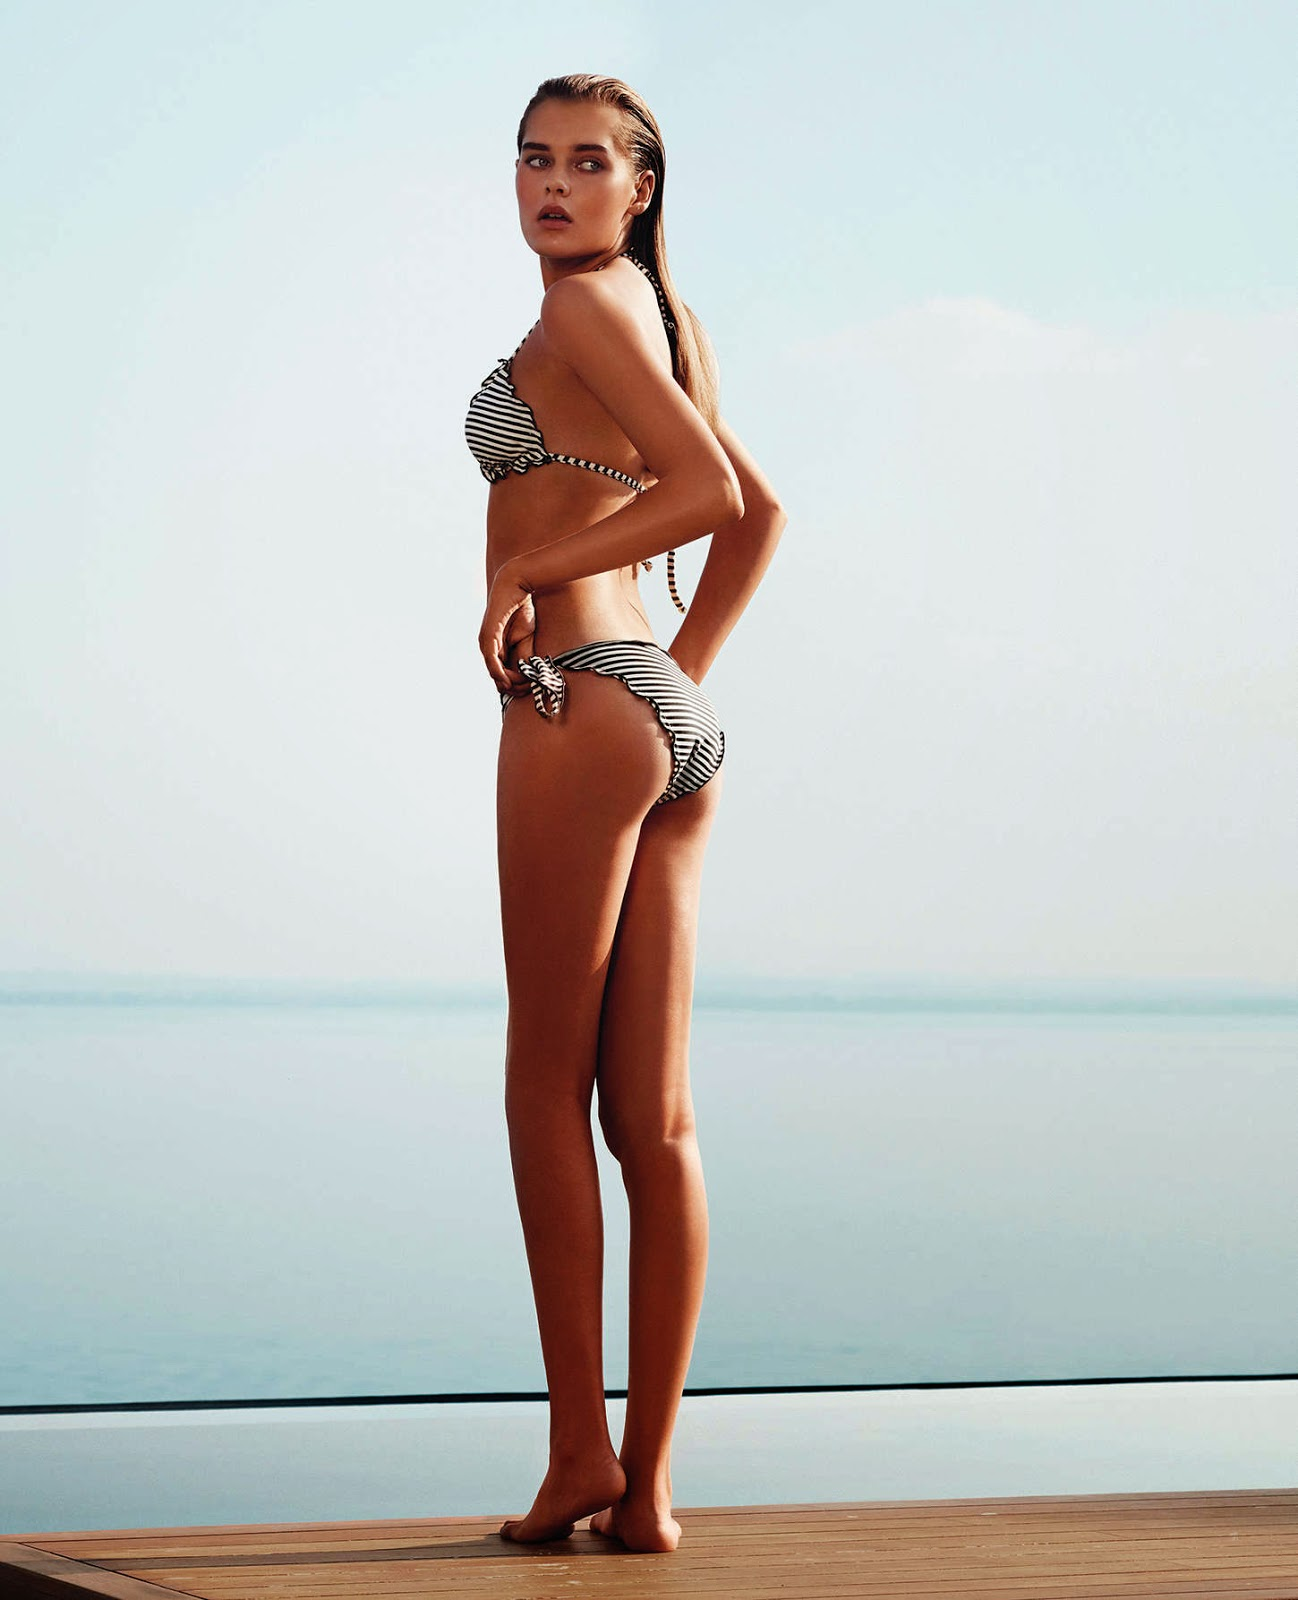 Twin-Set Swimwear Spring/Summer 2015 Lookbook